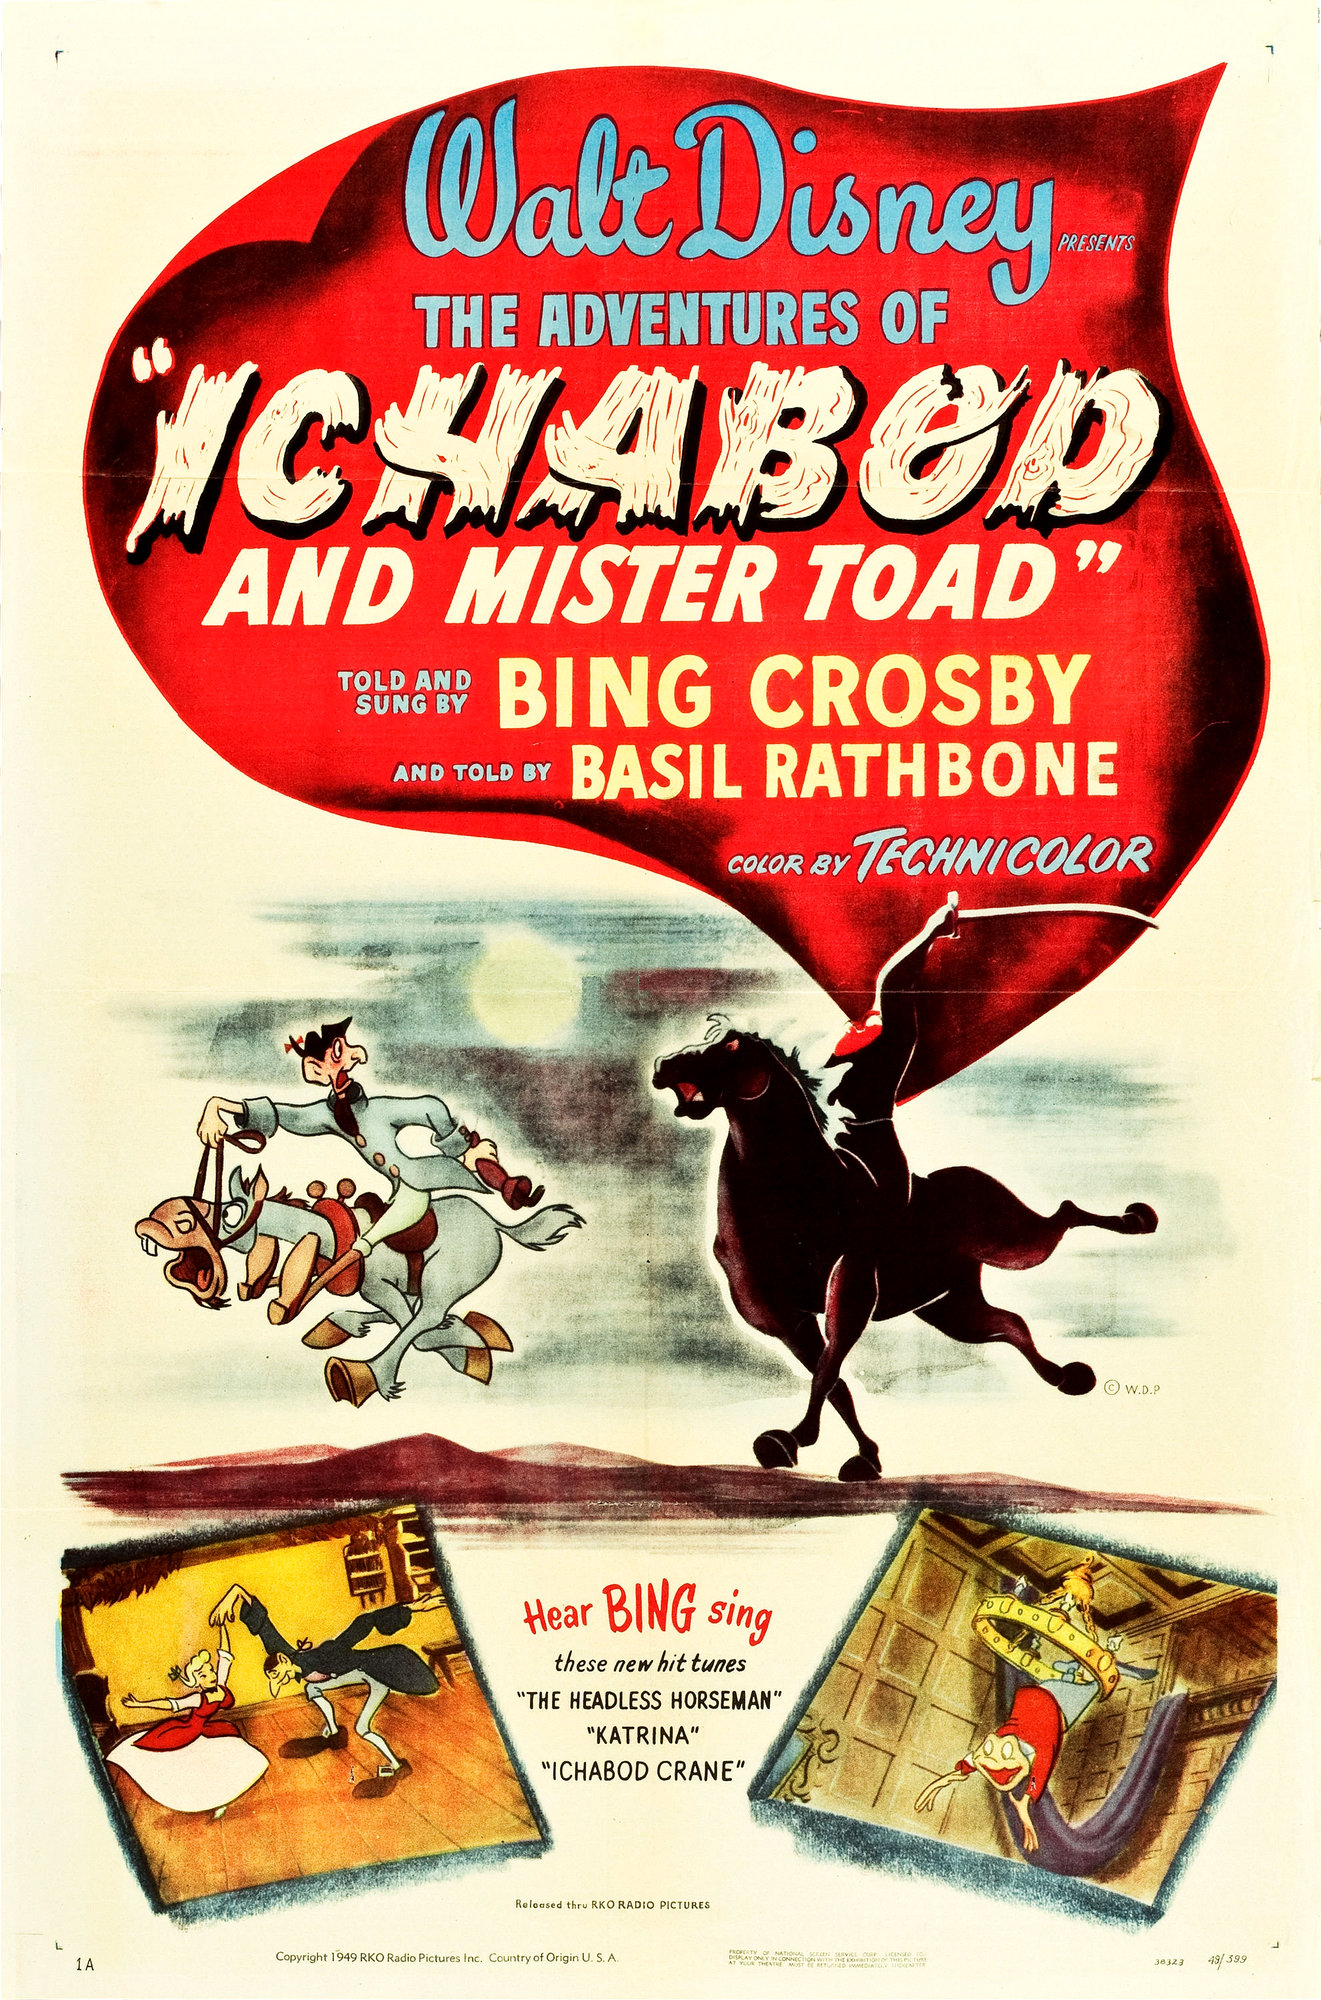 """Original theatrical poster for """"The Adventures of Ichabod and Mr. Toad"""" from Walt Disney."""